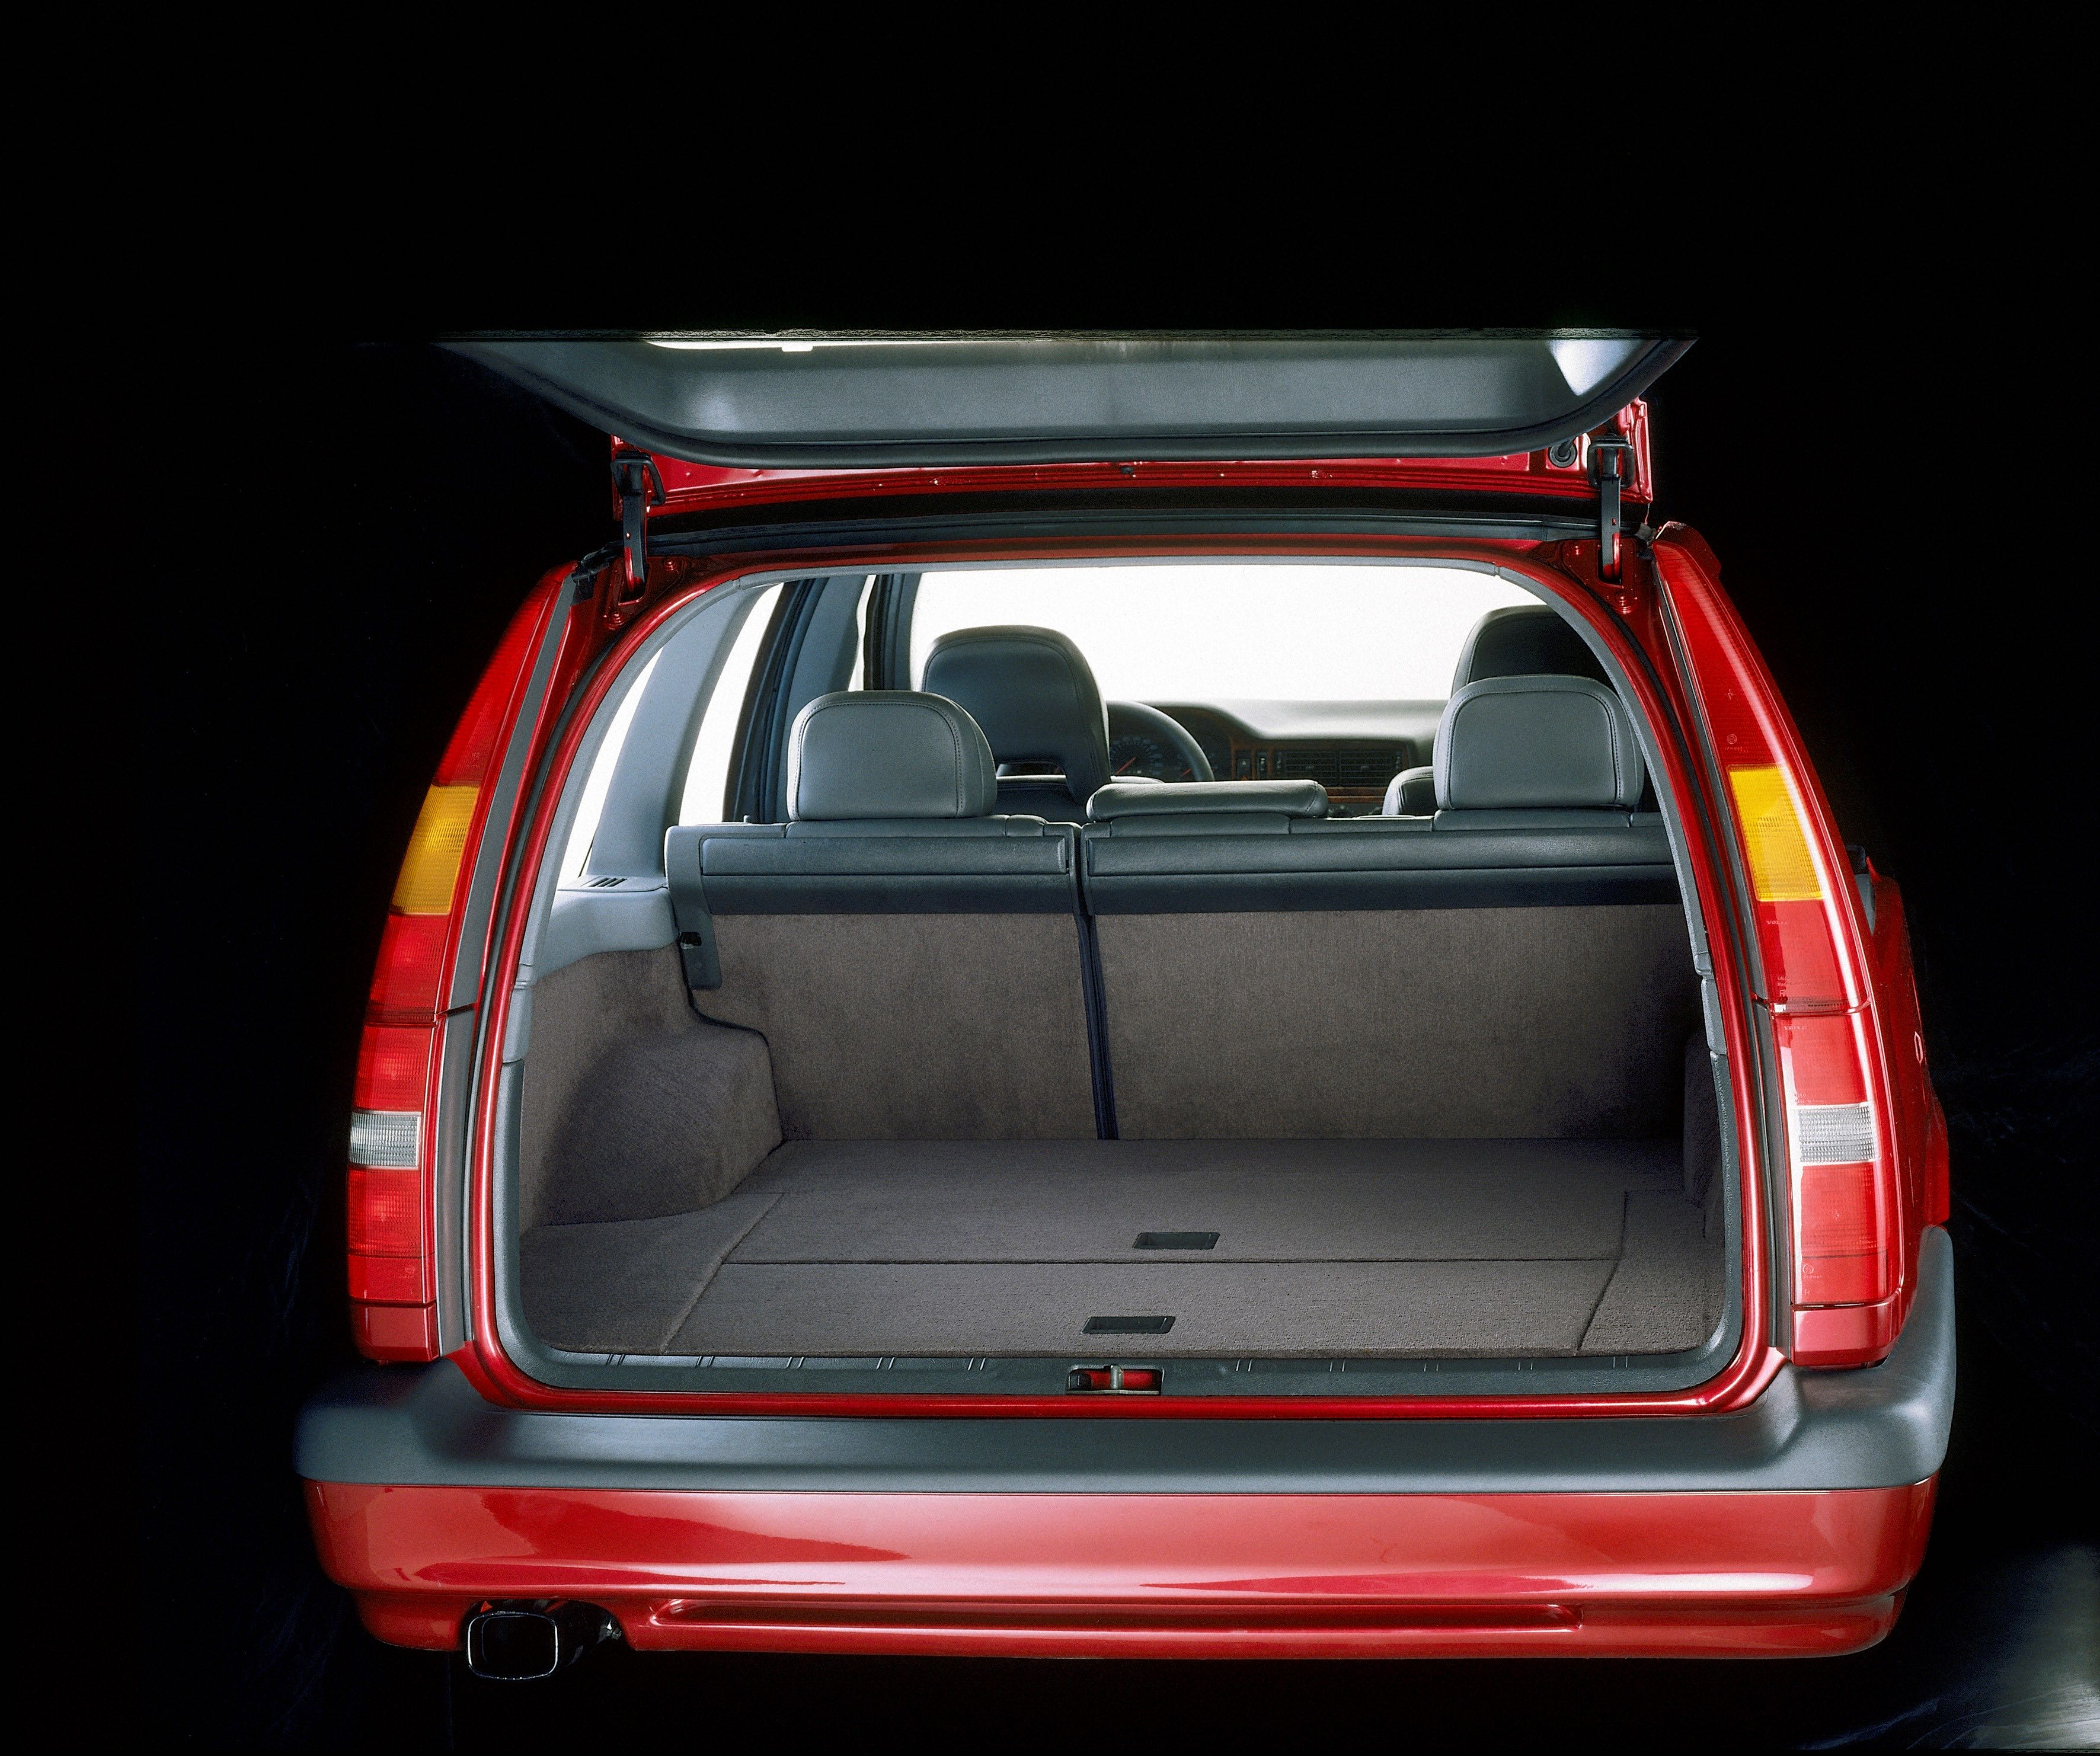 Volvo 850 Interior -  850, 850 wagon, 1996, Exterior, Historical, Images, Safety